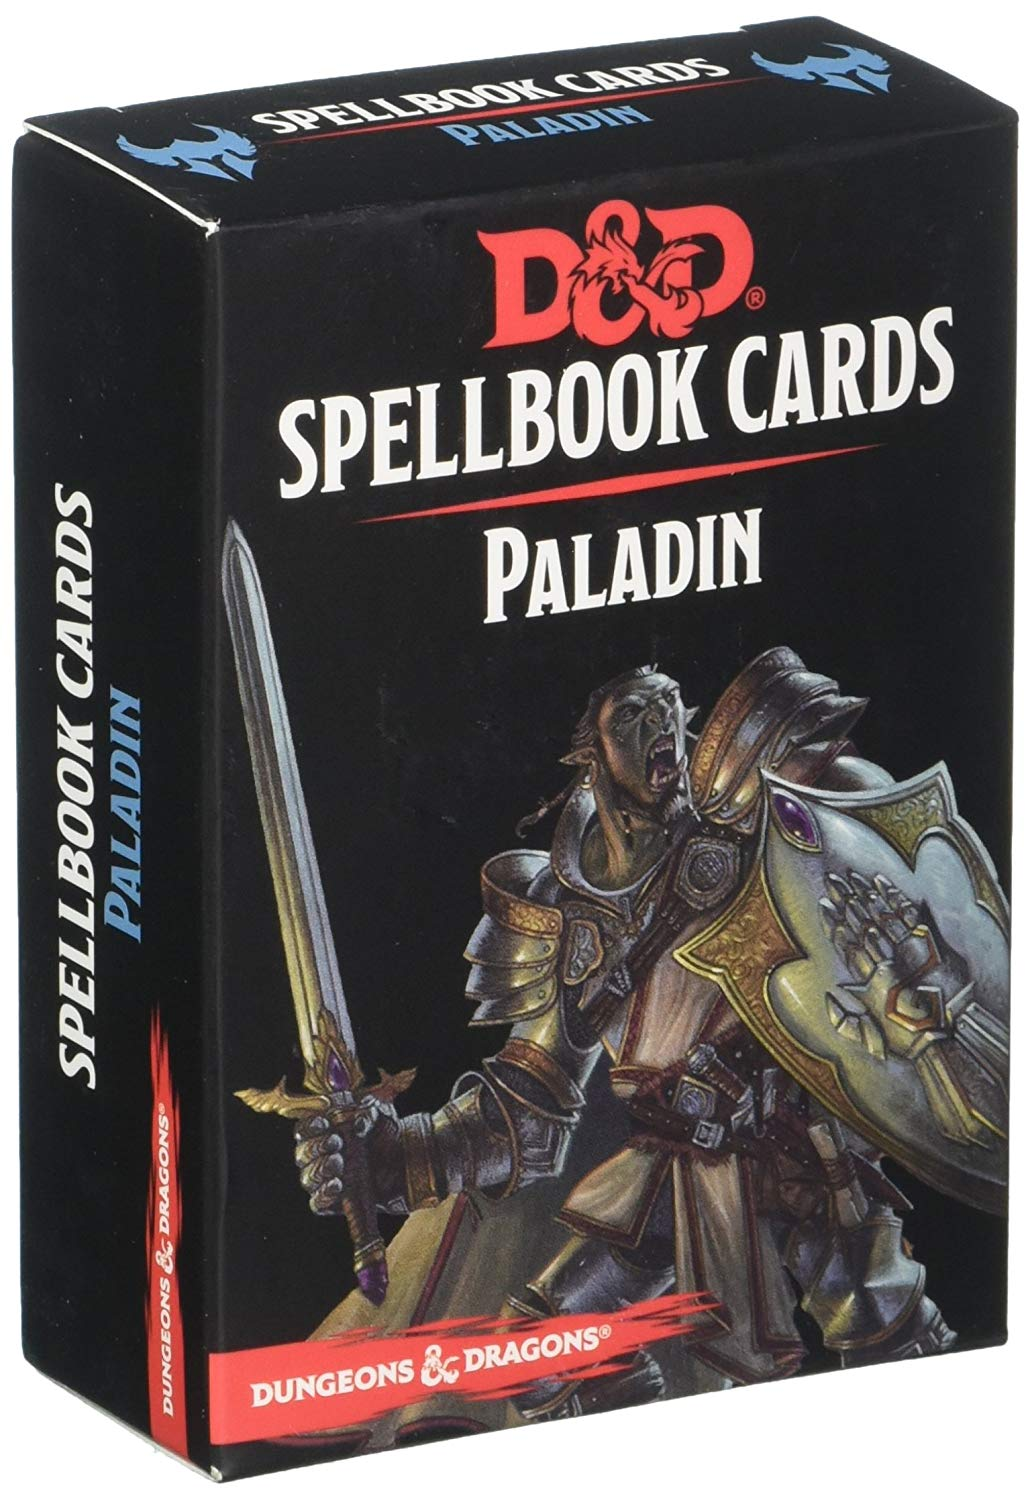 Dungeons & Dragons Paladin Spellbook Cards